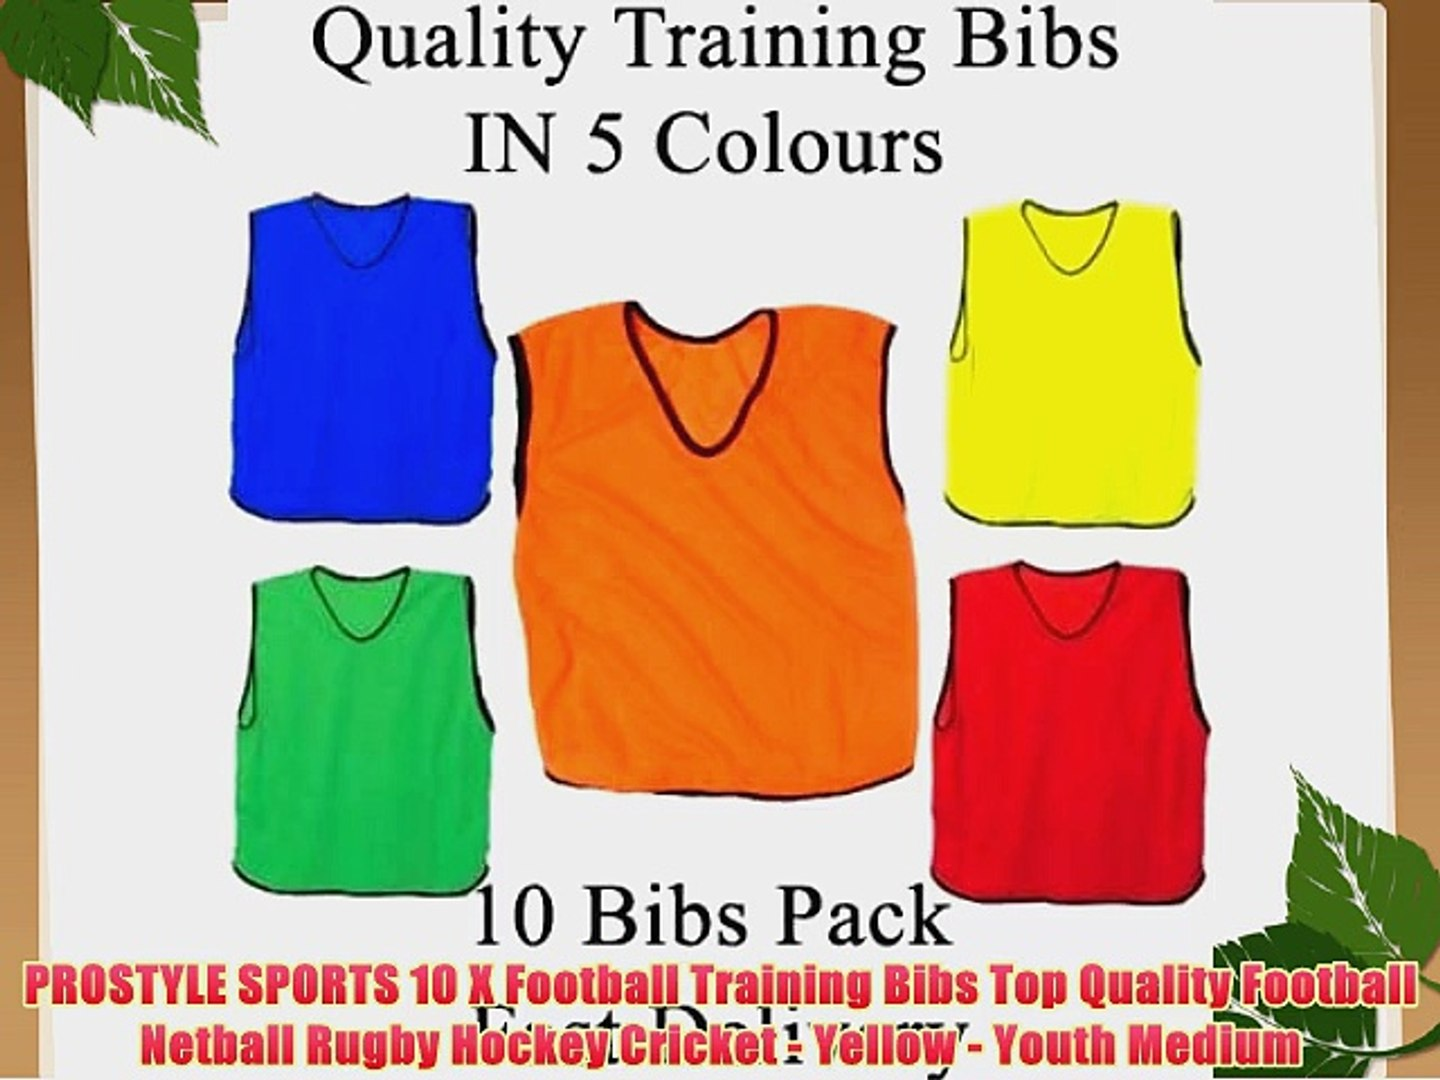 PROSTYLE SPORTS 10 X Football Training Bibs Top Quality Football Netball Rugby Hockey Cricket